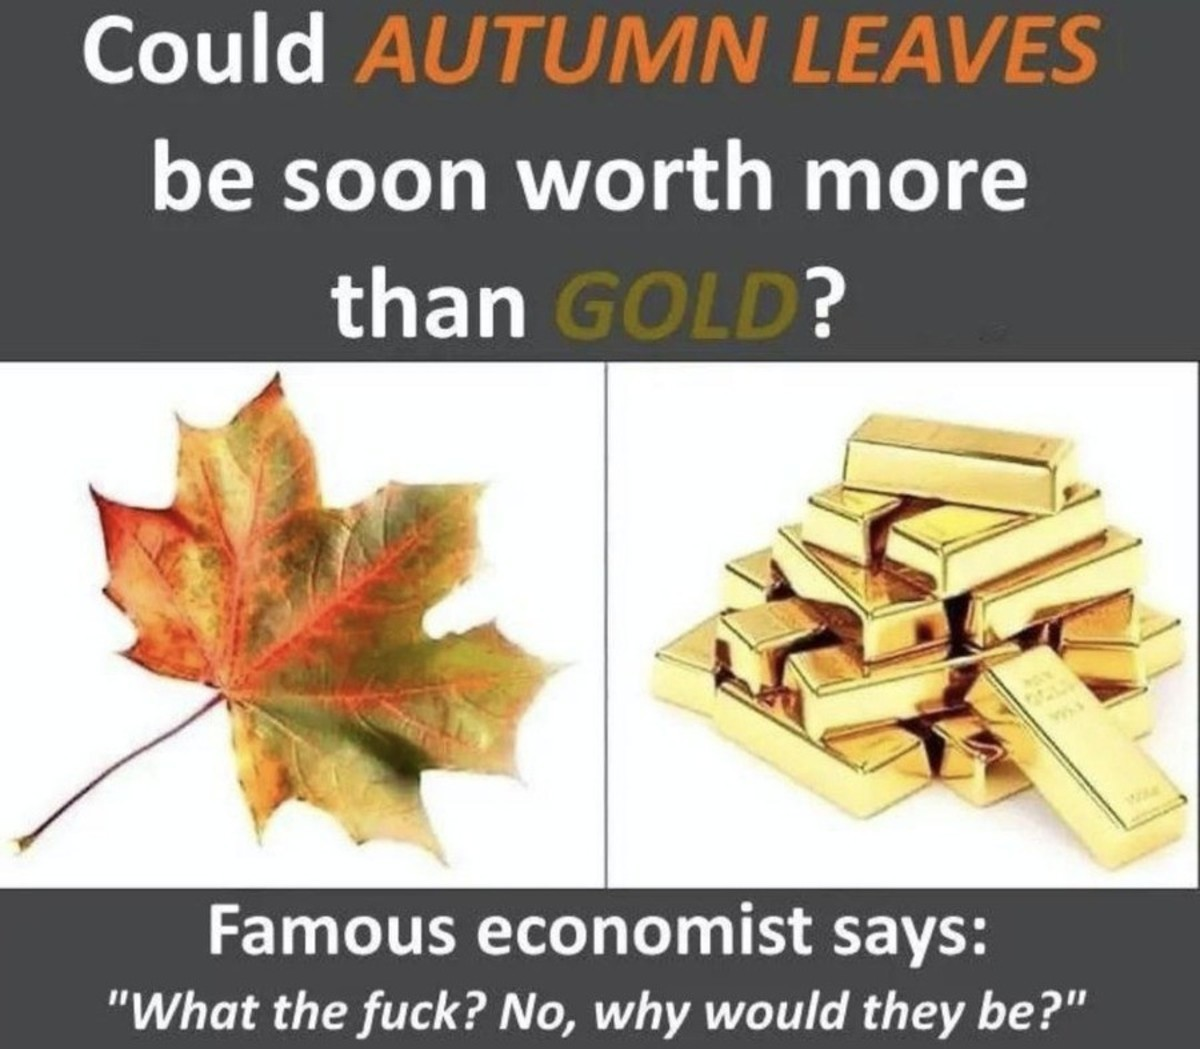 but they may soon be worth more than the dollar. .. I love my leaves, I keep them near my jewelry anyway